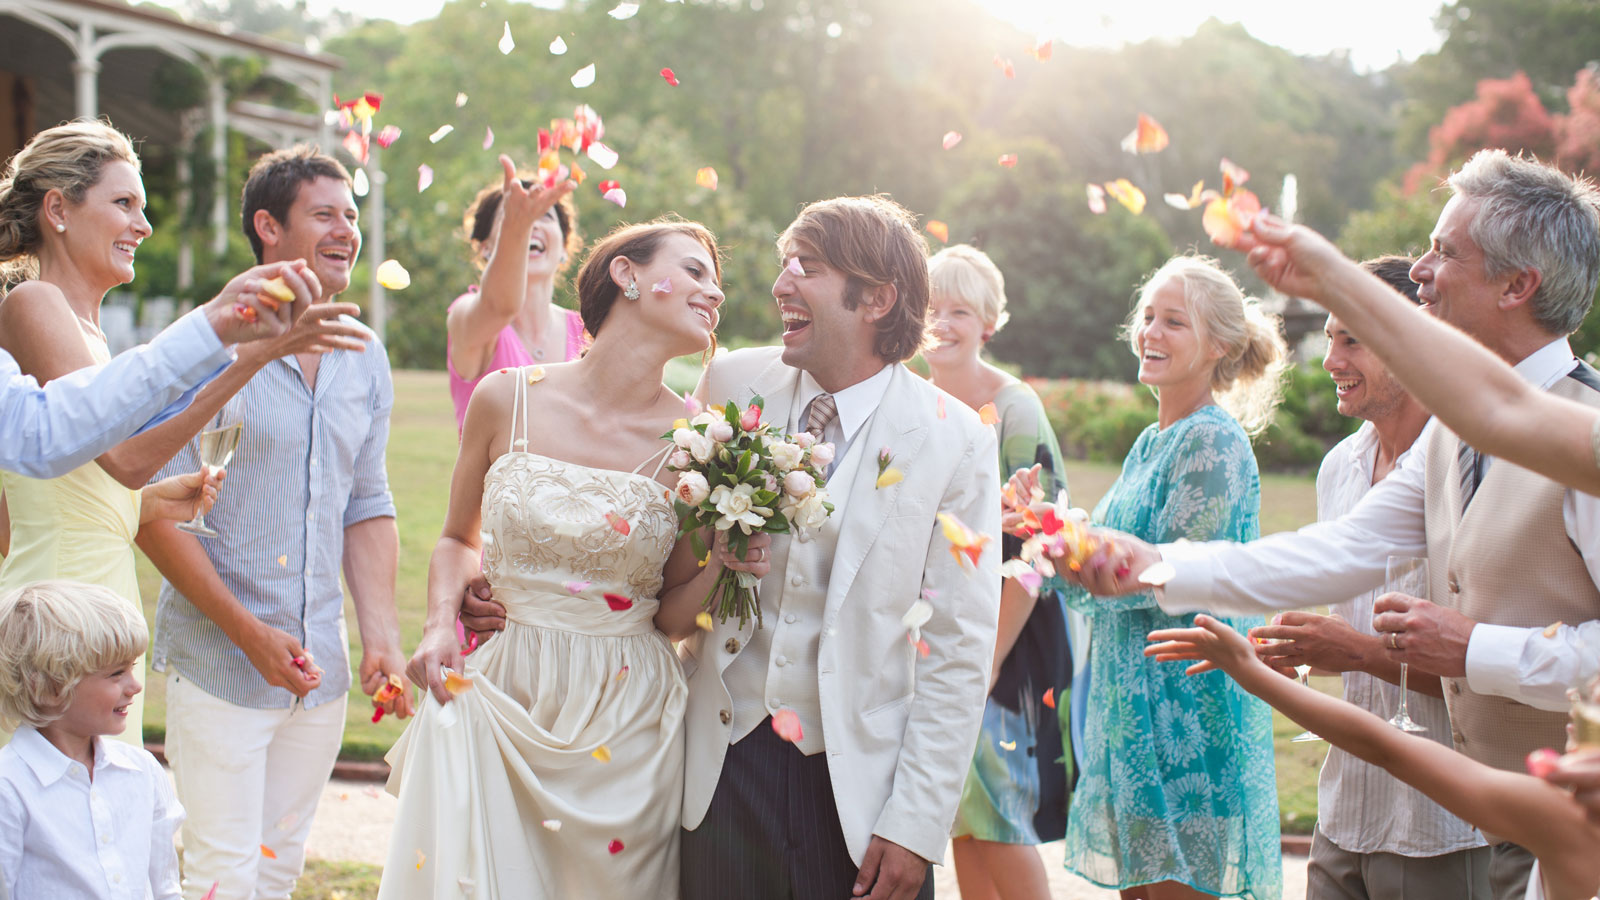 9 Ways To Cut Costs That Your Wedding Guests Will Never Notice